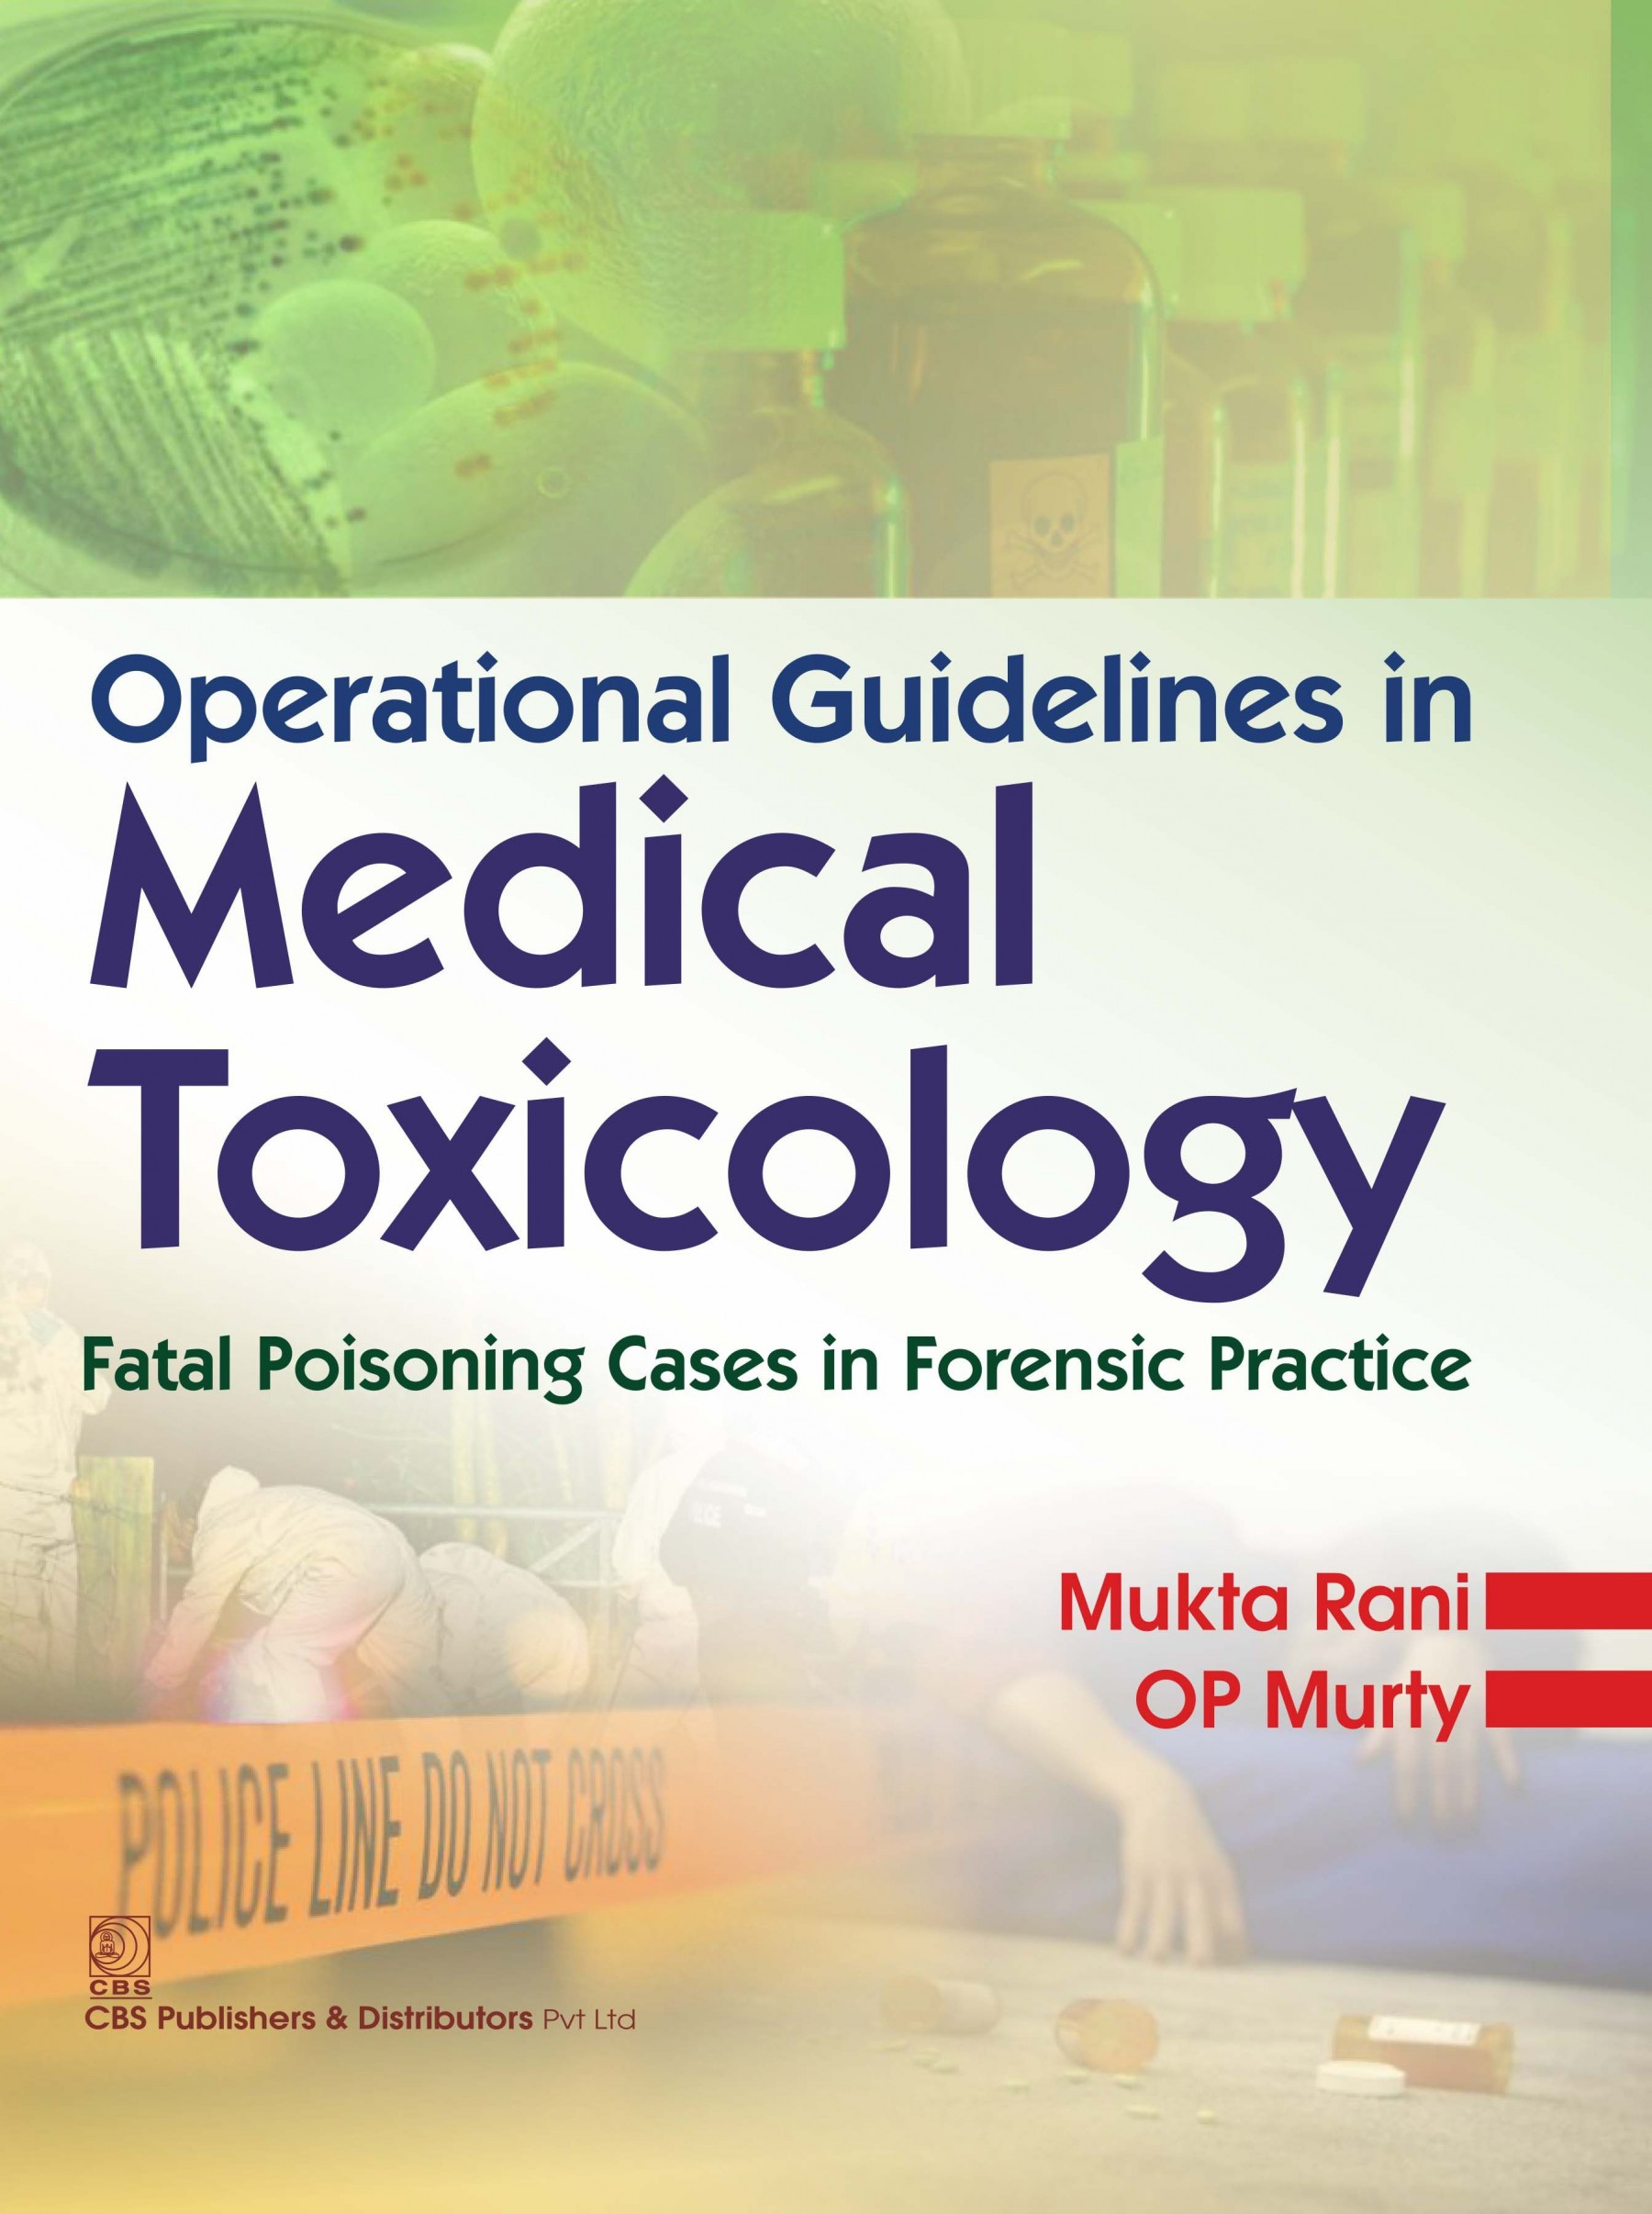 Operational Guidelines Inmedical Toxicology Fatal Poising Cases In Forensic Practice (H 2016)